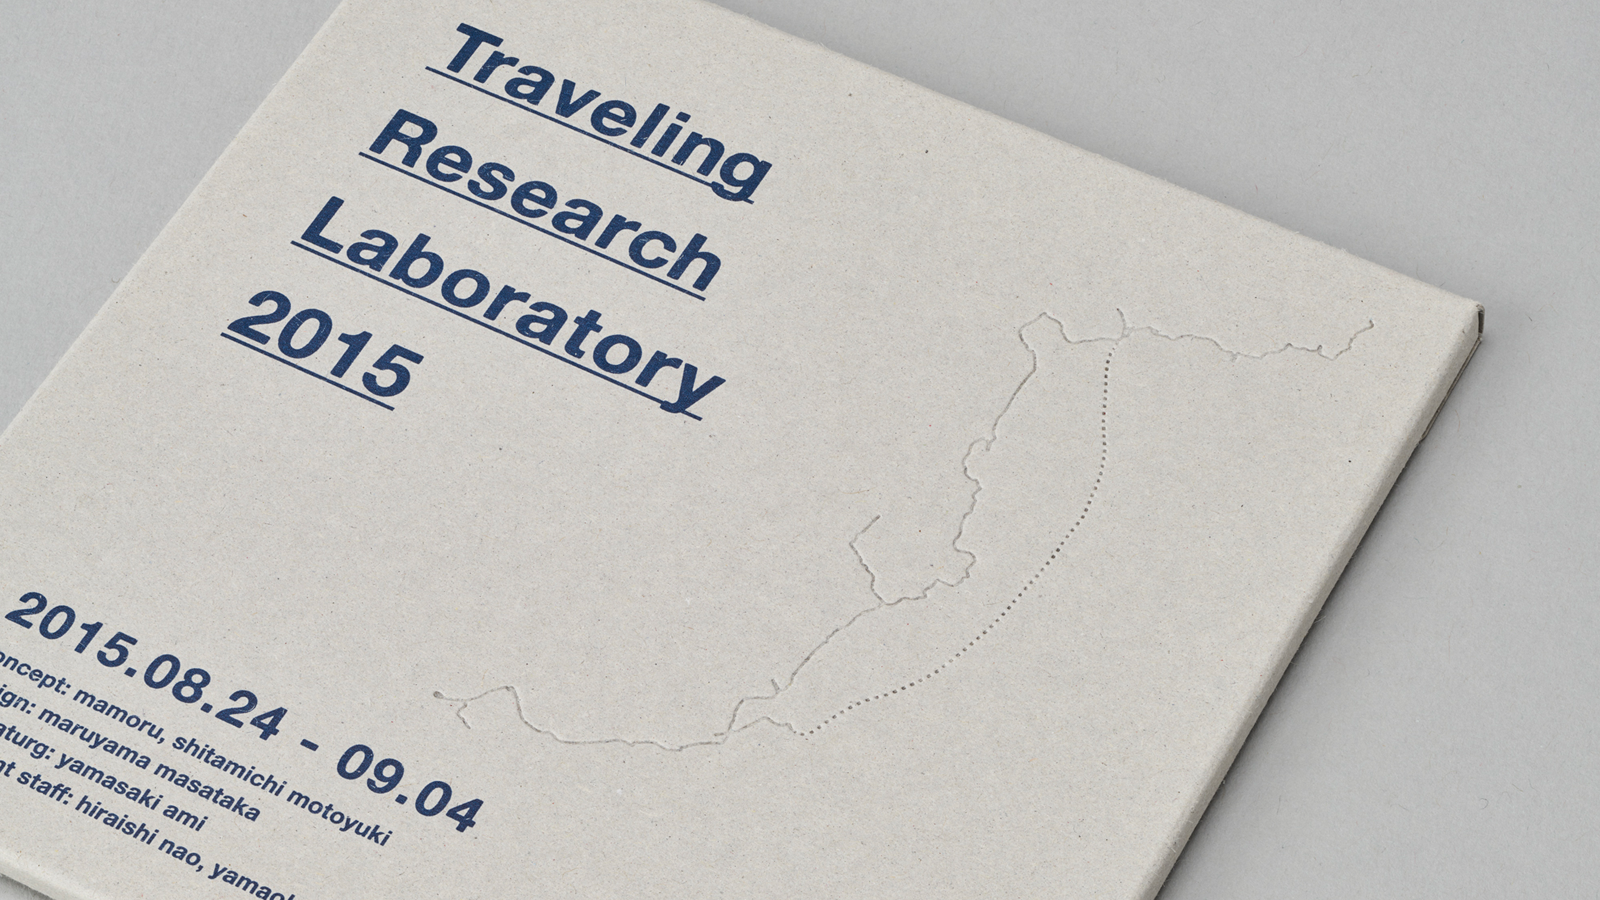 Traveling Research Labratory 2015